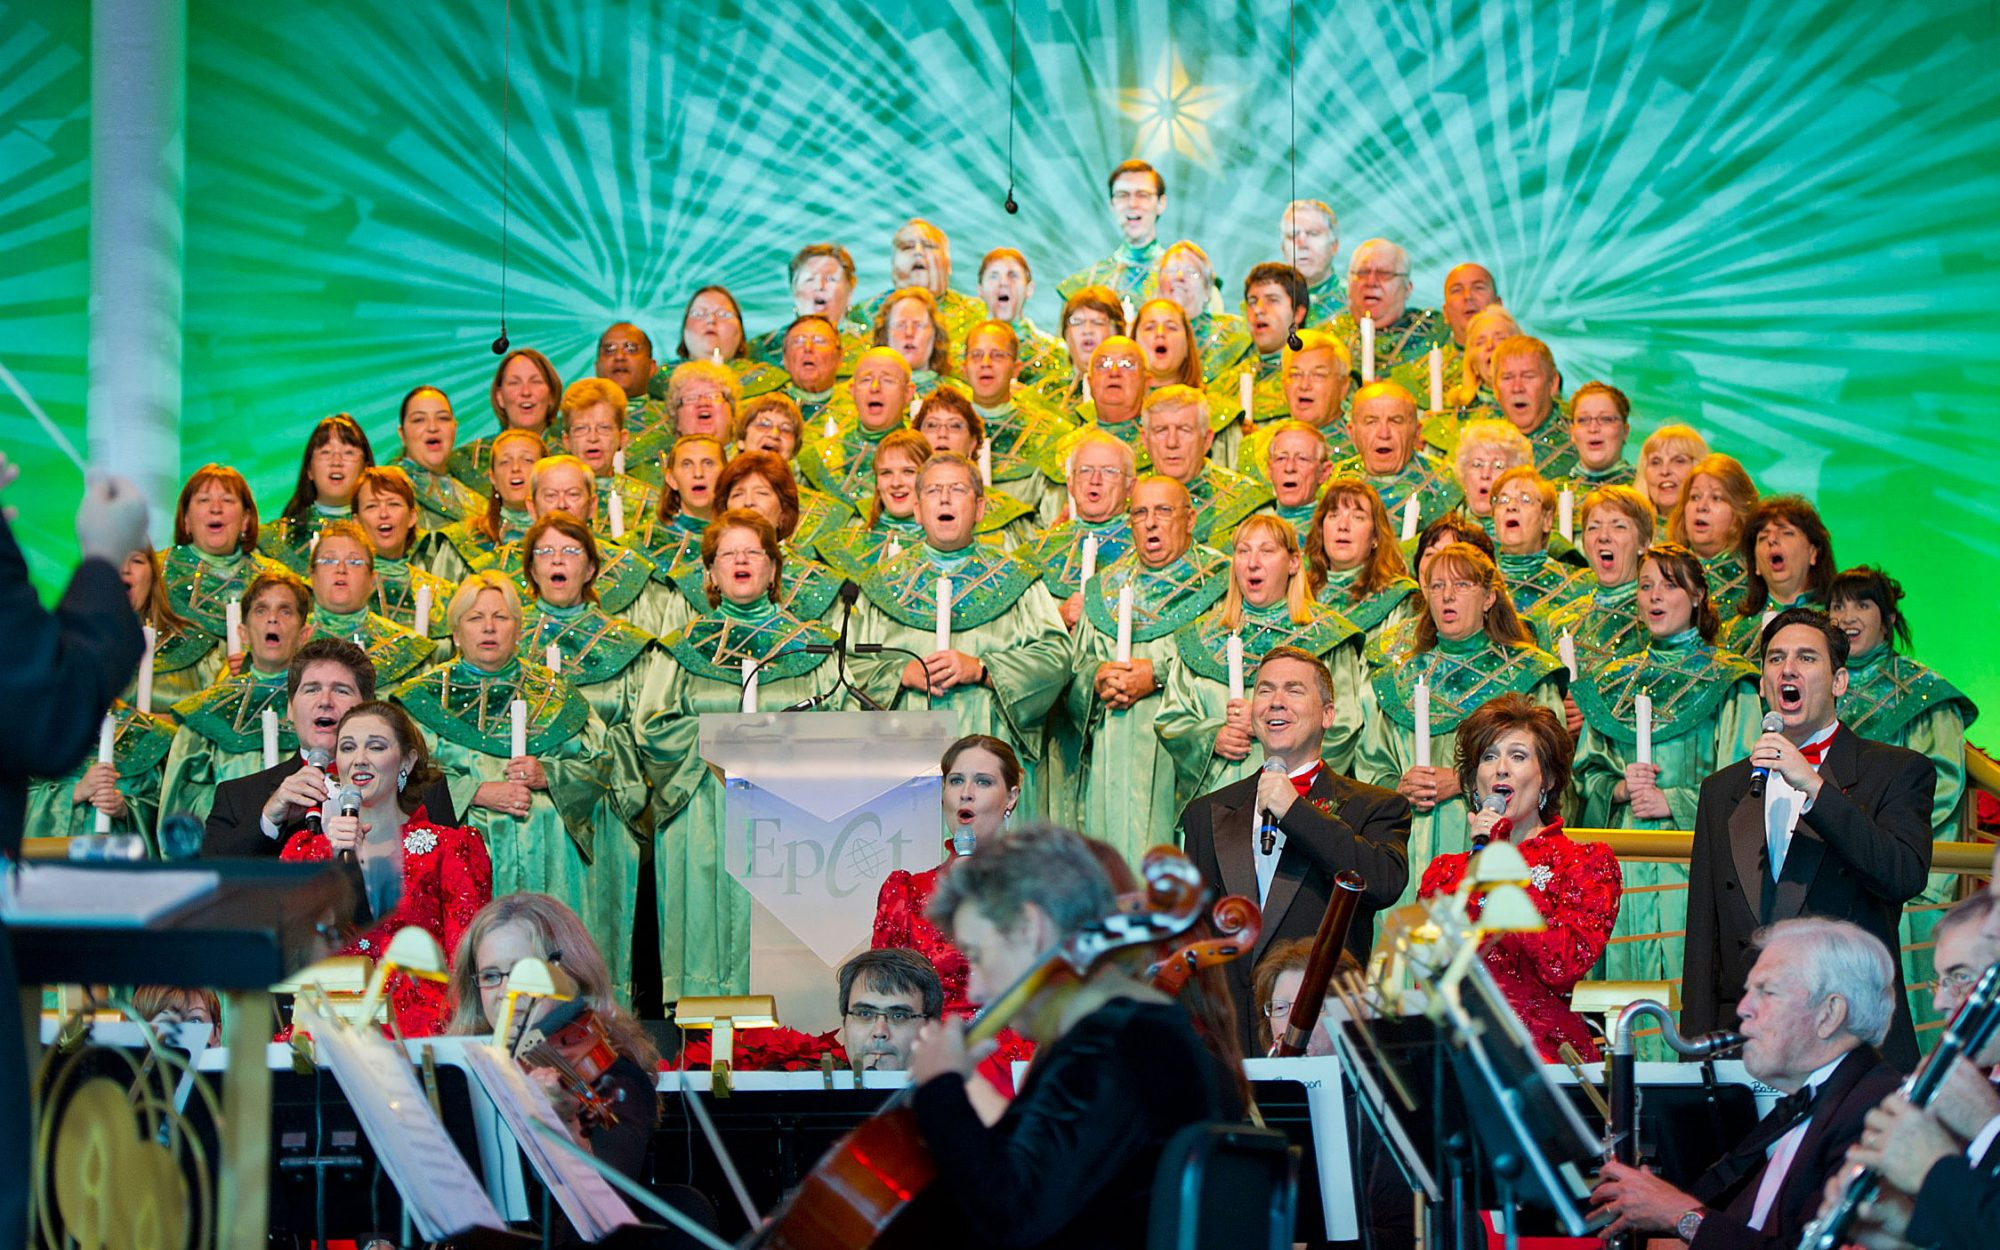 Reserve a Seat for the Candlelight Processional